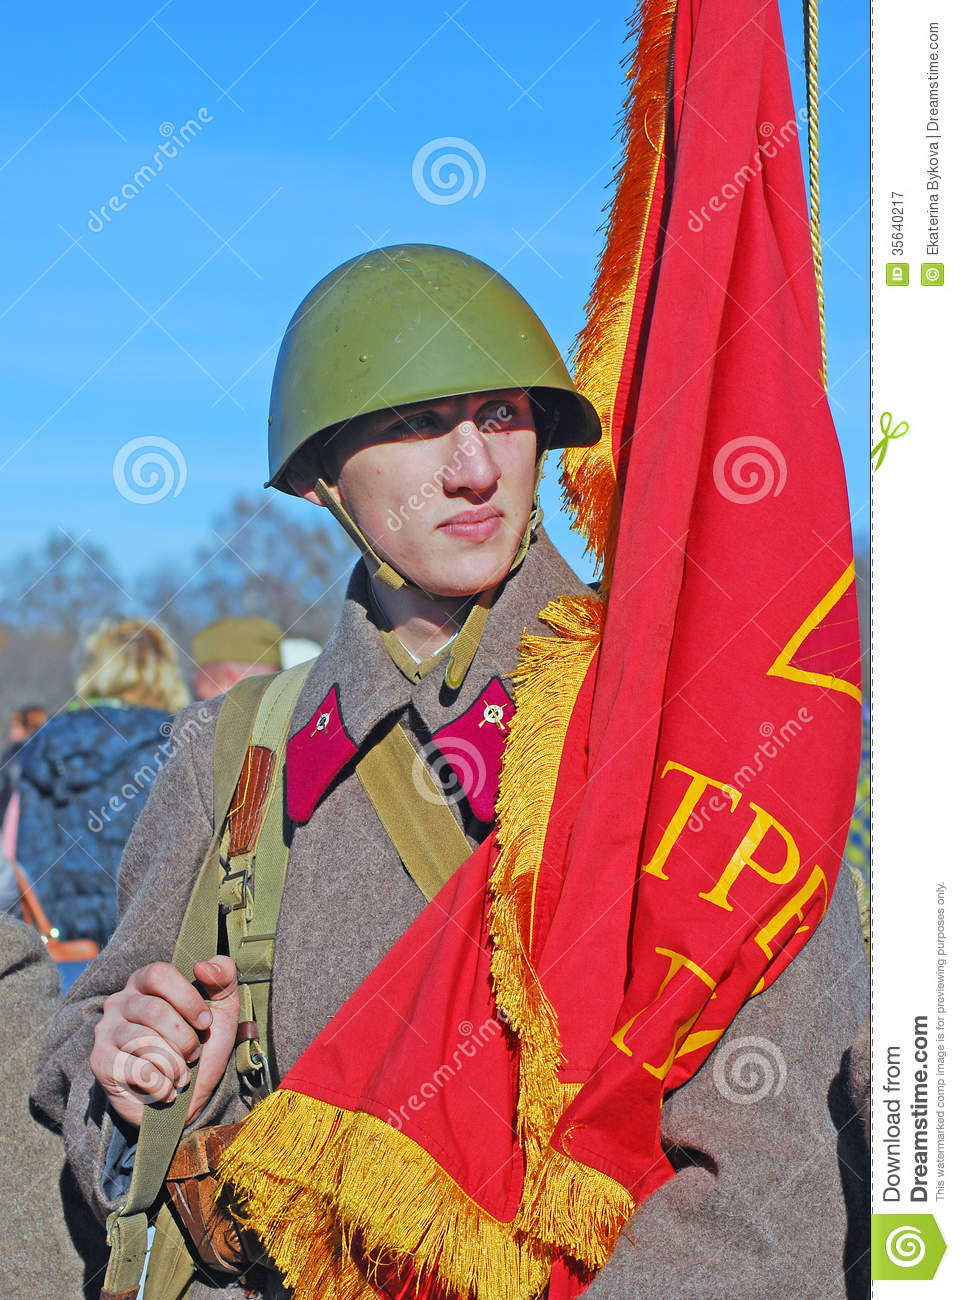 O To Ww Bing Comsquare Root 123: Russian Soldier-reenactor Holding A Red Flag Editorial